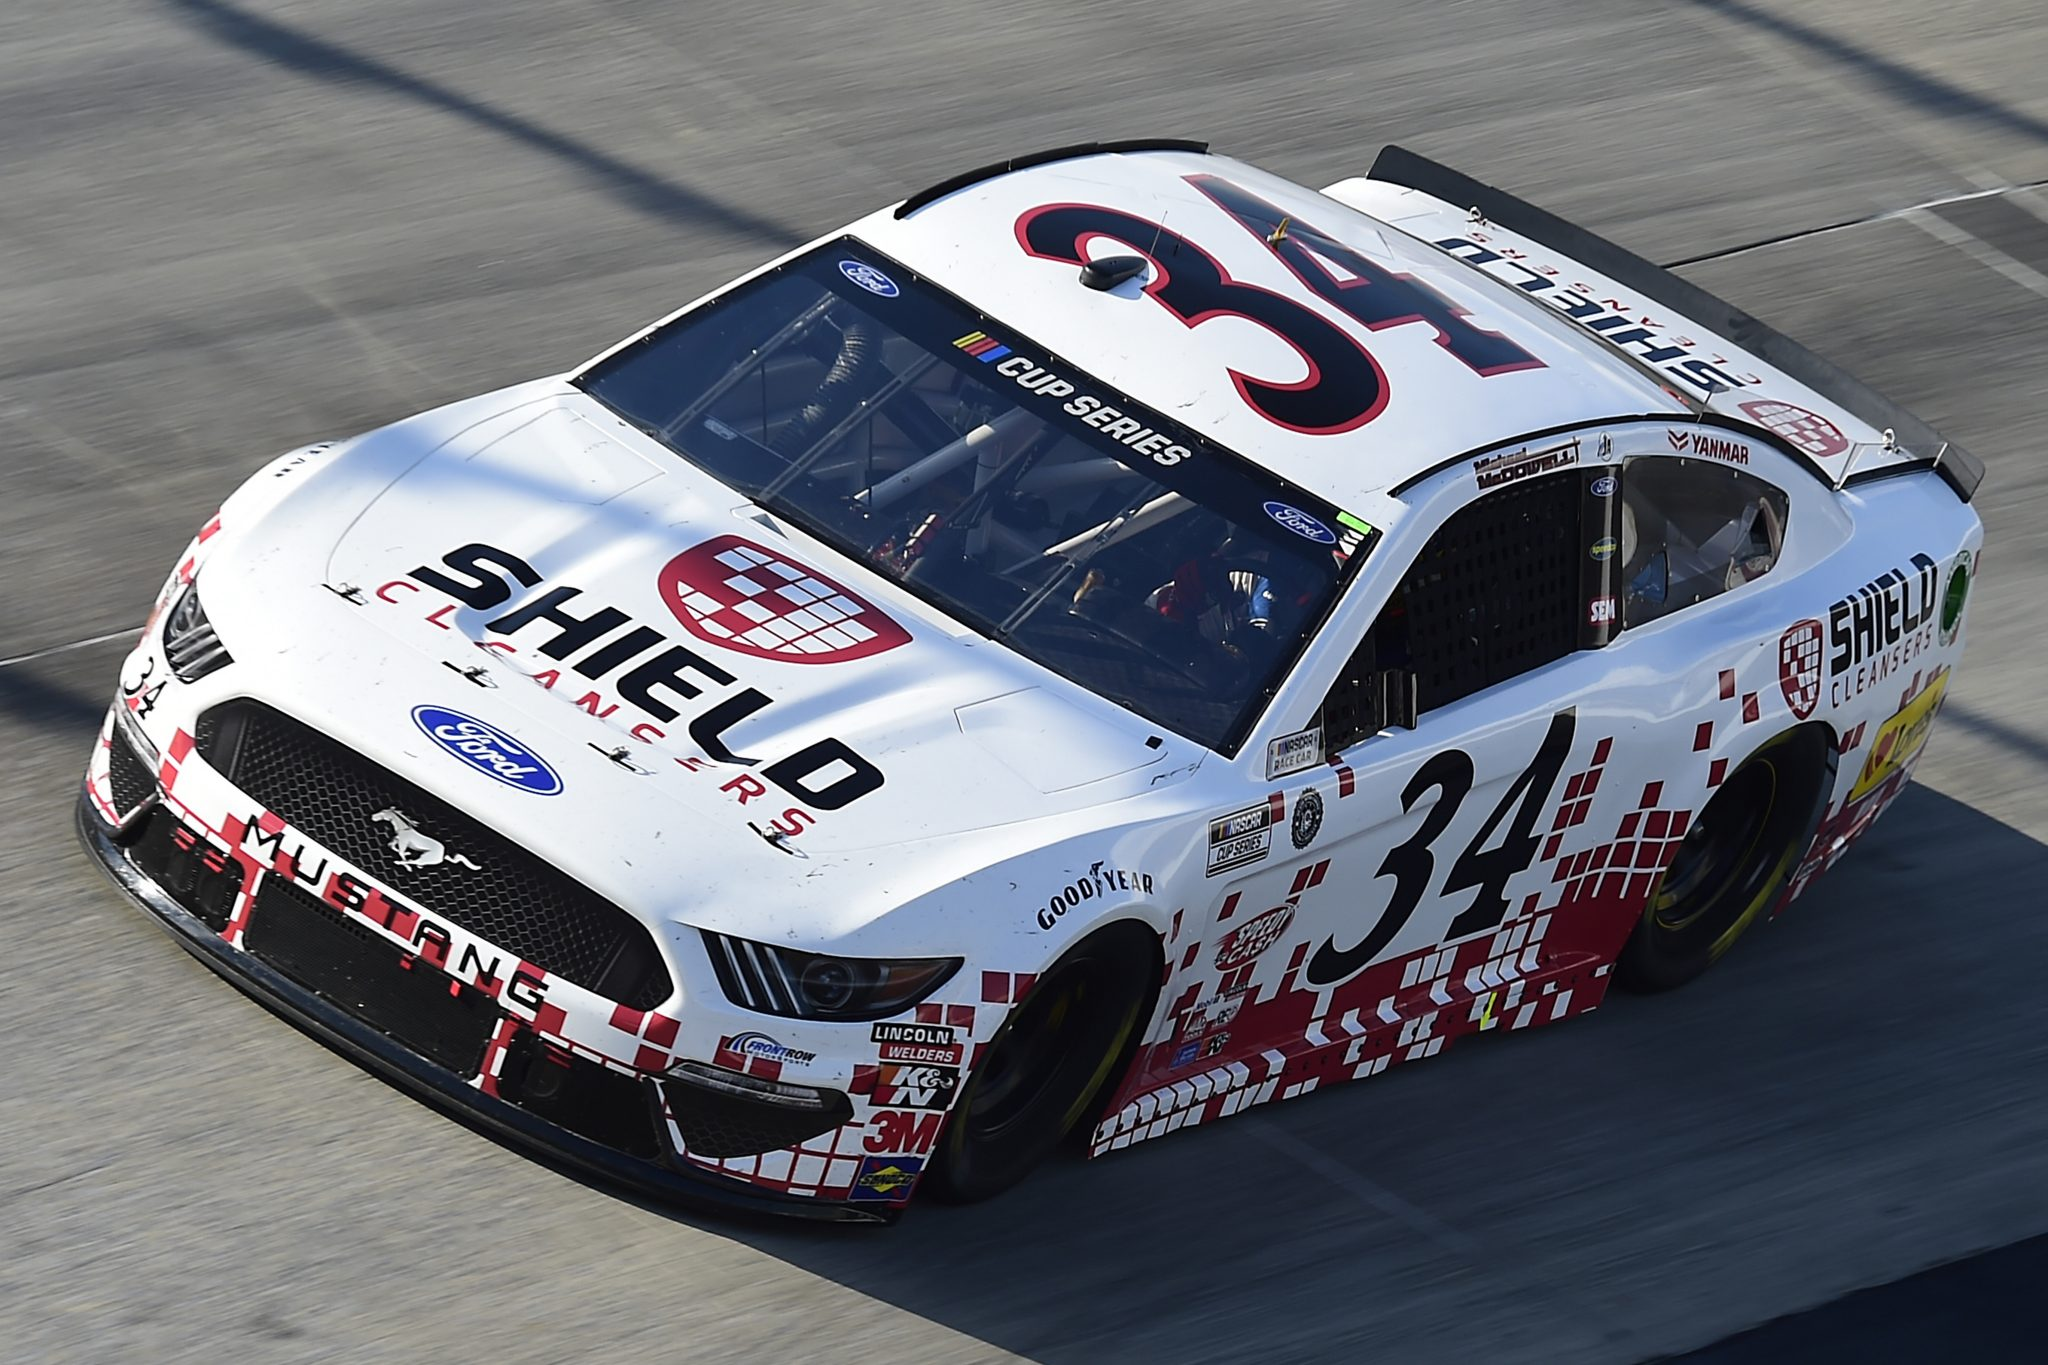 DOVER, DELAWARE - AUGUST 23: Michael McDowell, driver of the #34 Digital Ally Shield Cleansers Ford, drives during the NASCAR Cup Series Drydene 311 at Dover International Speedway on August 23, 2020 in Dover, Delaware. (Photo by Jared C. Tilton/Getty Images) | Getty Images